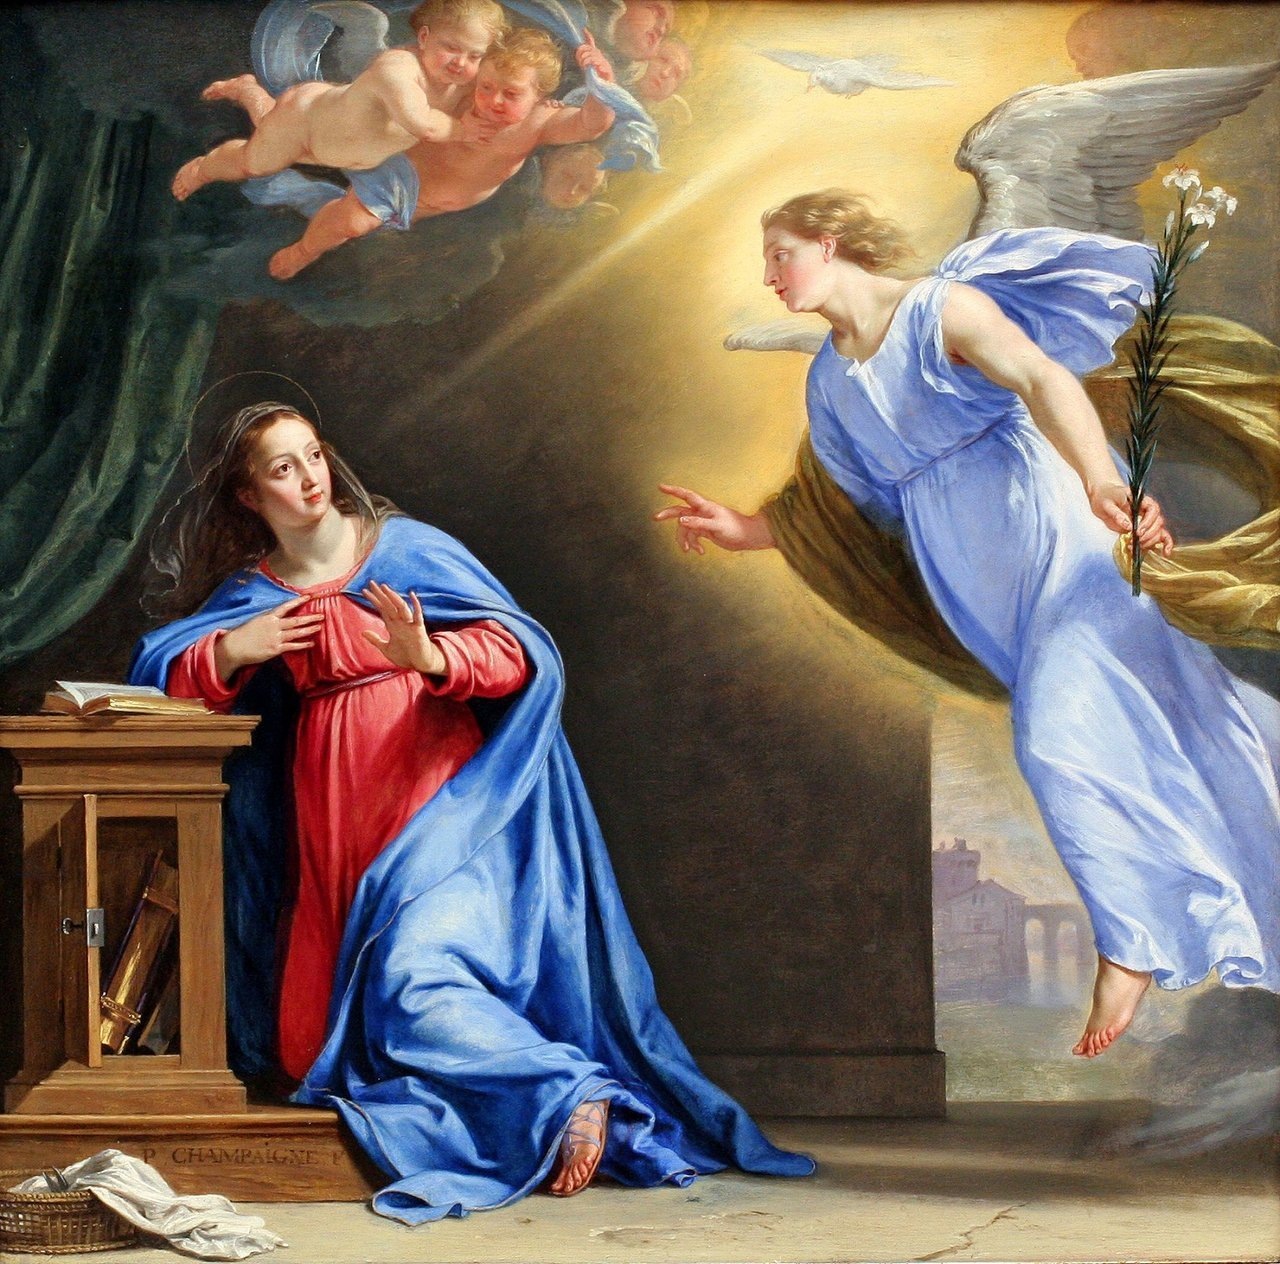 "The Annunciation (ca, 1644). Philippe de Champaigne  (French, 1602–1674). Oil on wood. The Metropolitan Museum of Art. This picture was painted in for the private oratory of Anne of Austria, the widowed wife of Louis XIII. The oratory, a small oval room in the Palais Royal, Paris, was decorated by the most prominent French painters of the day. Its altarpiece was painted by Simon Vouet; Champaigne painted a ""Marriage of the Virgin"" (Wallace Collection, London) and this ""Annunciation."" They seem to have been arranged around the walls, forming a narrative cycle."